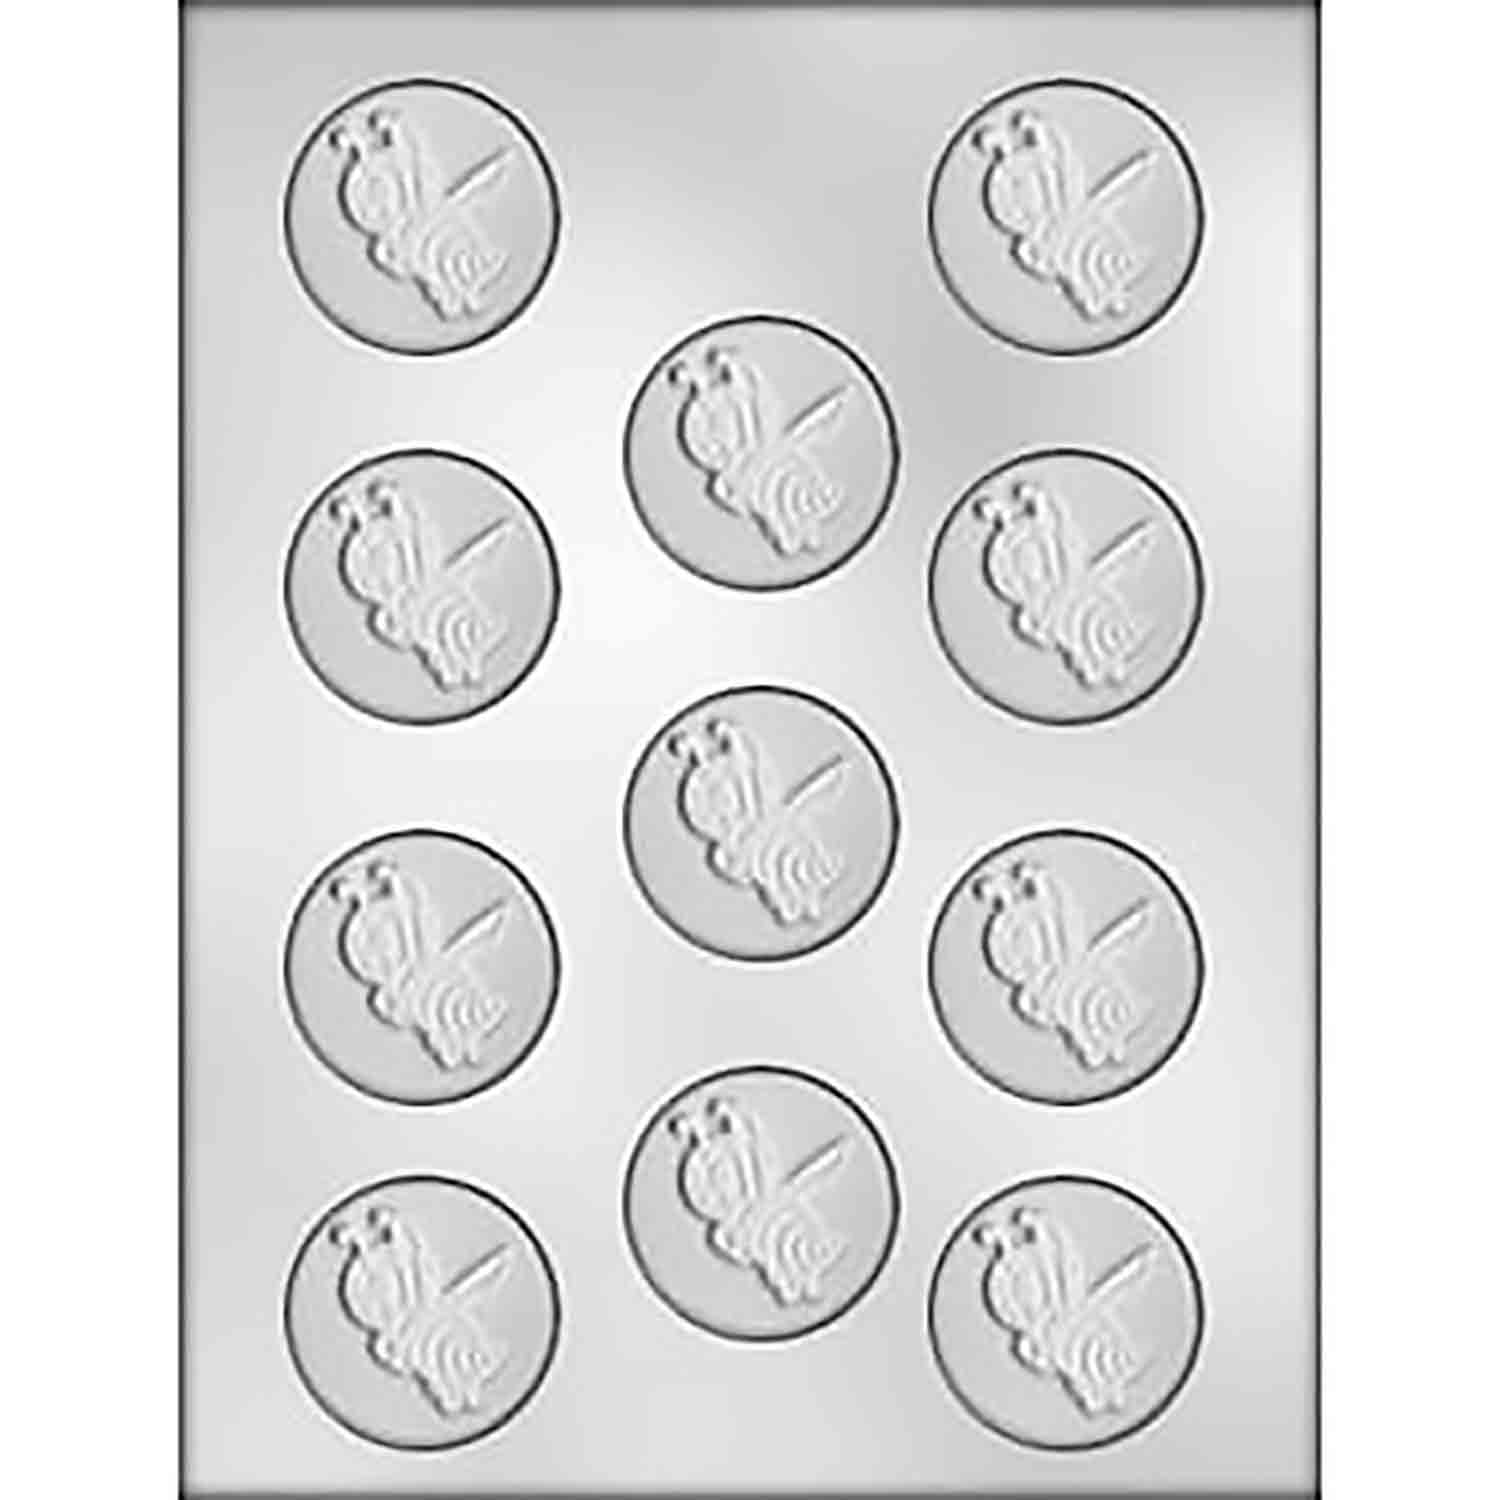 Bumblee Bee Mint Chocolate Candy Mold